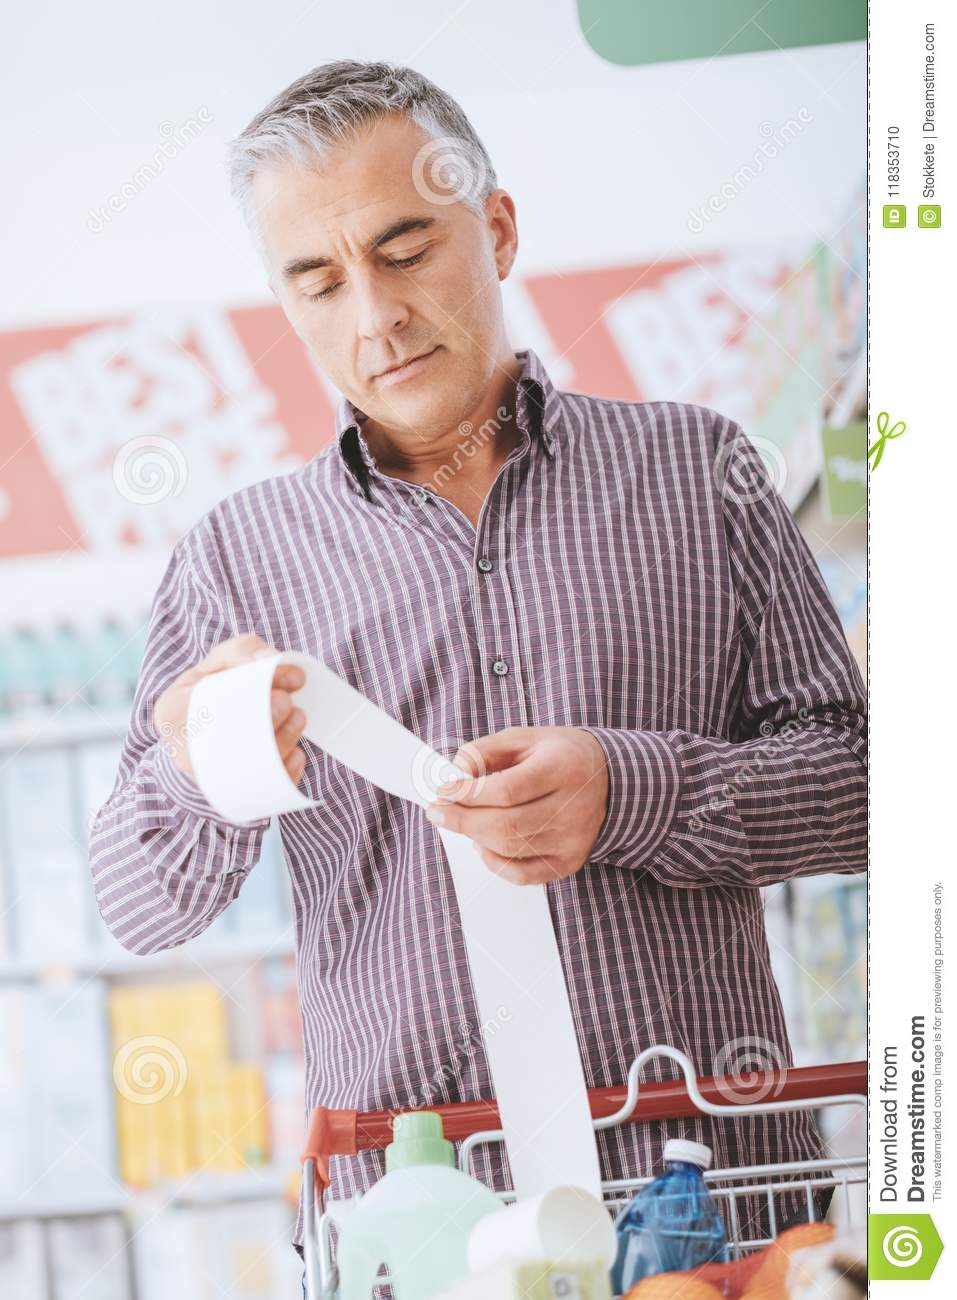 Man checking a grocery receipt